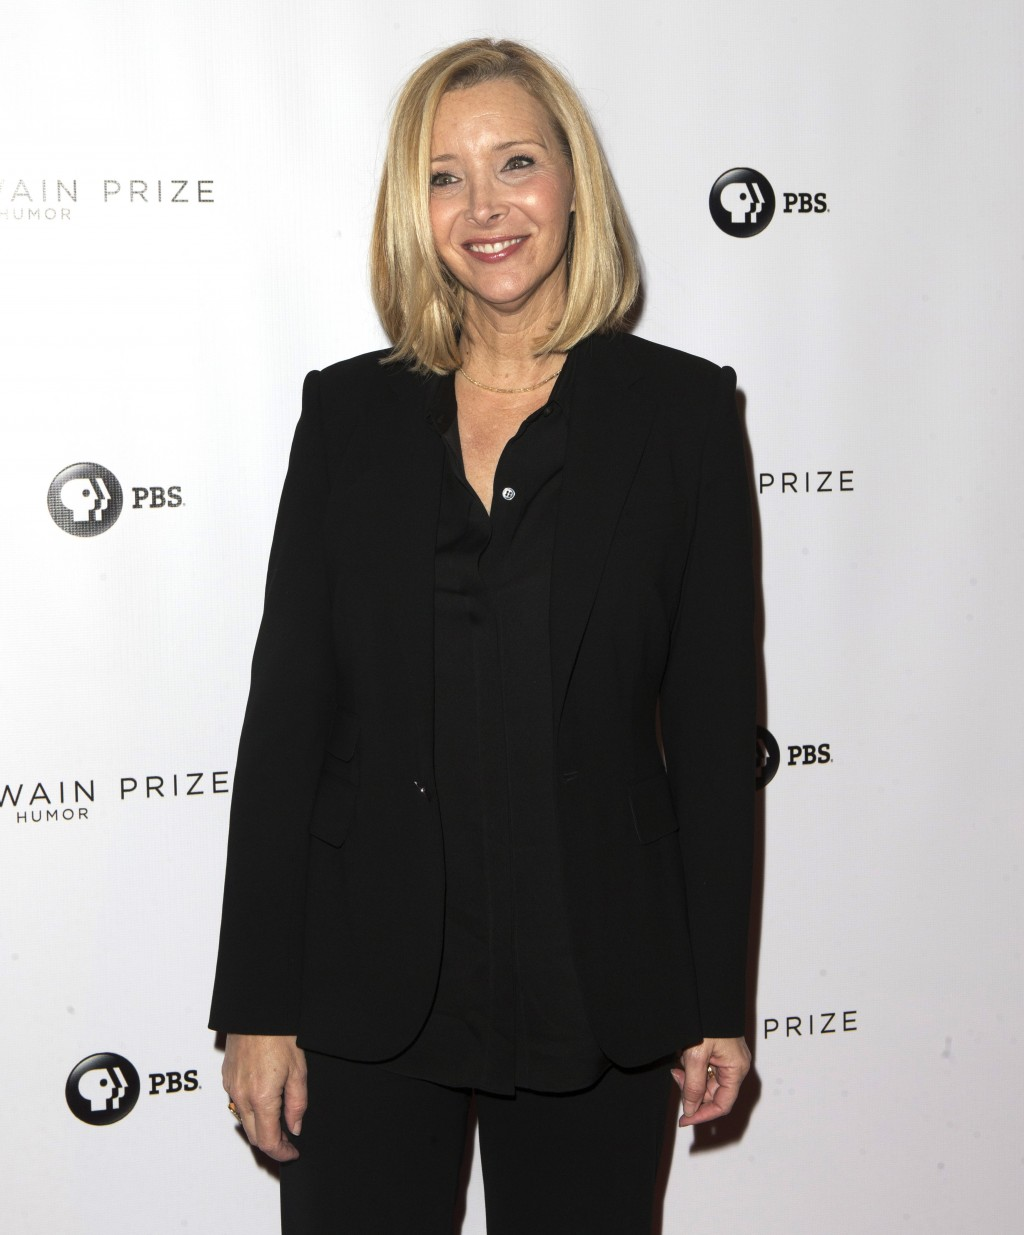 Lisa Kudrow arrives at the Kennedy Center for the Performing Arts for the 21st Annual Mark Twain Prize for American Humor presented to Julia Louis-Dre